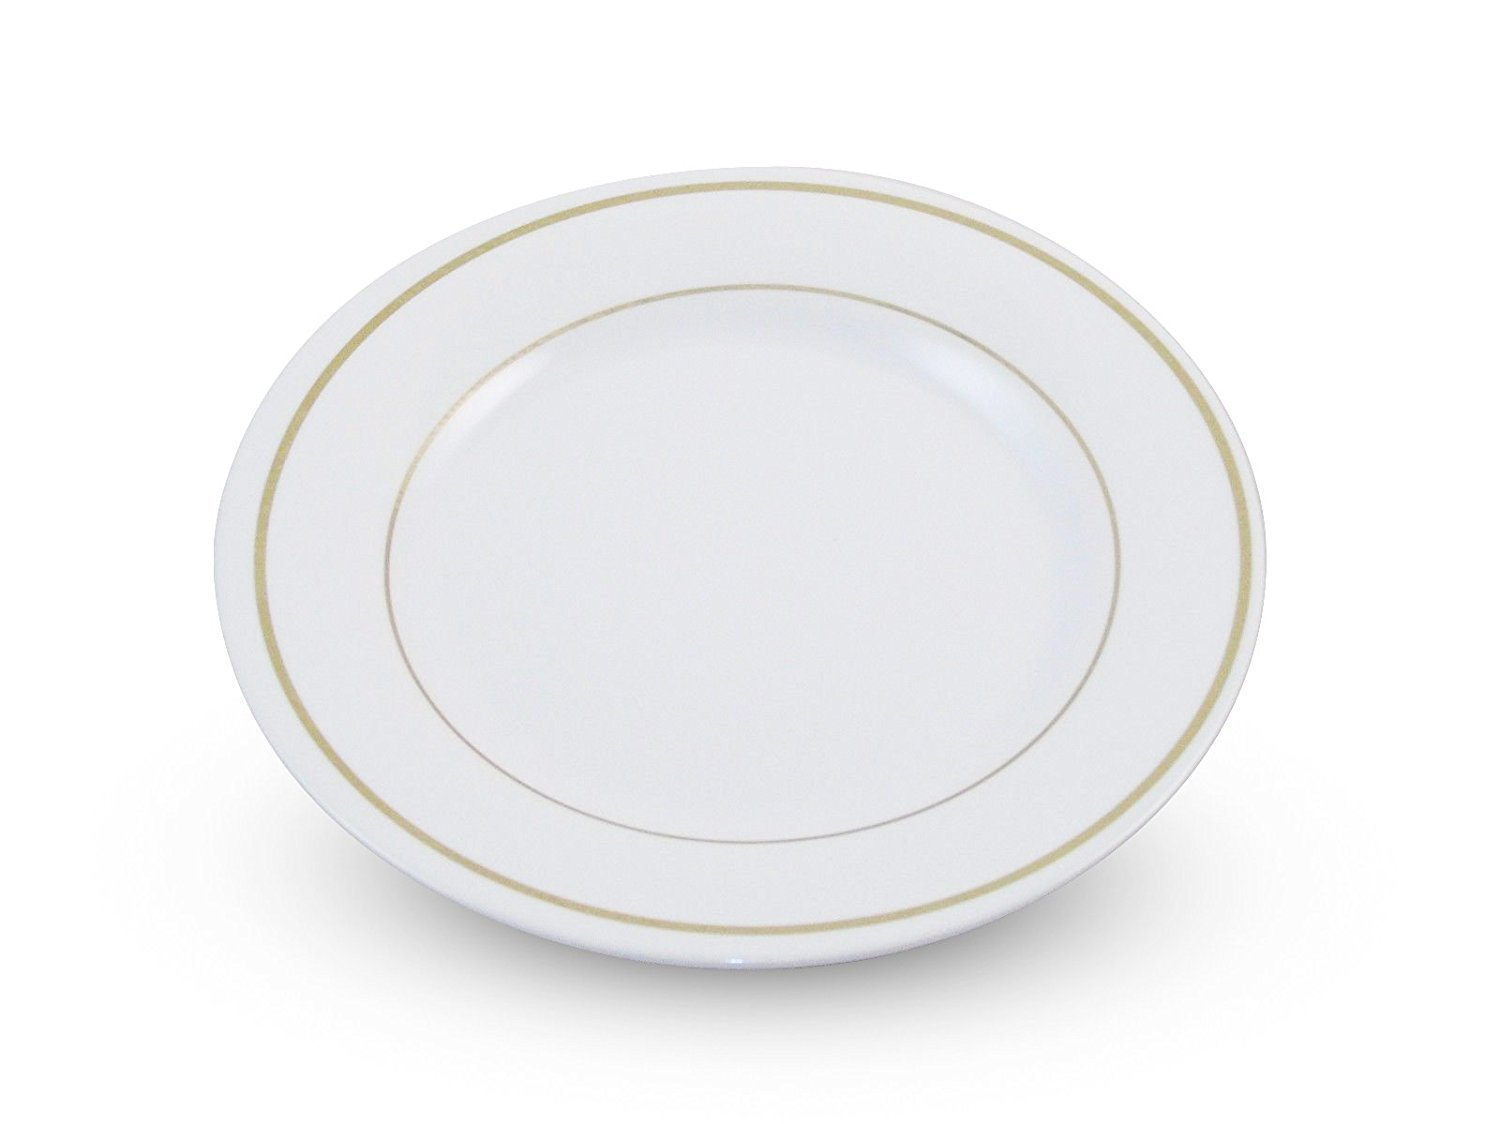 Amazon.com | Set of 4 Melamine 9\  Dinner Plates - Stain Chip and Break Resistant. Good for RV\u0027s. Accent Plates  sc 1 st  Amazon.com & Amazon.com | Set of 4 Melamine 9"|1500|1124|?|fb3c994e2a04bcef202fec6f27b86c45|False|UNLIKELY|0.3586171865463257